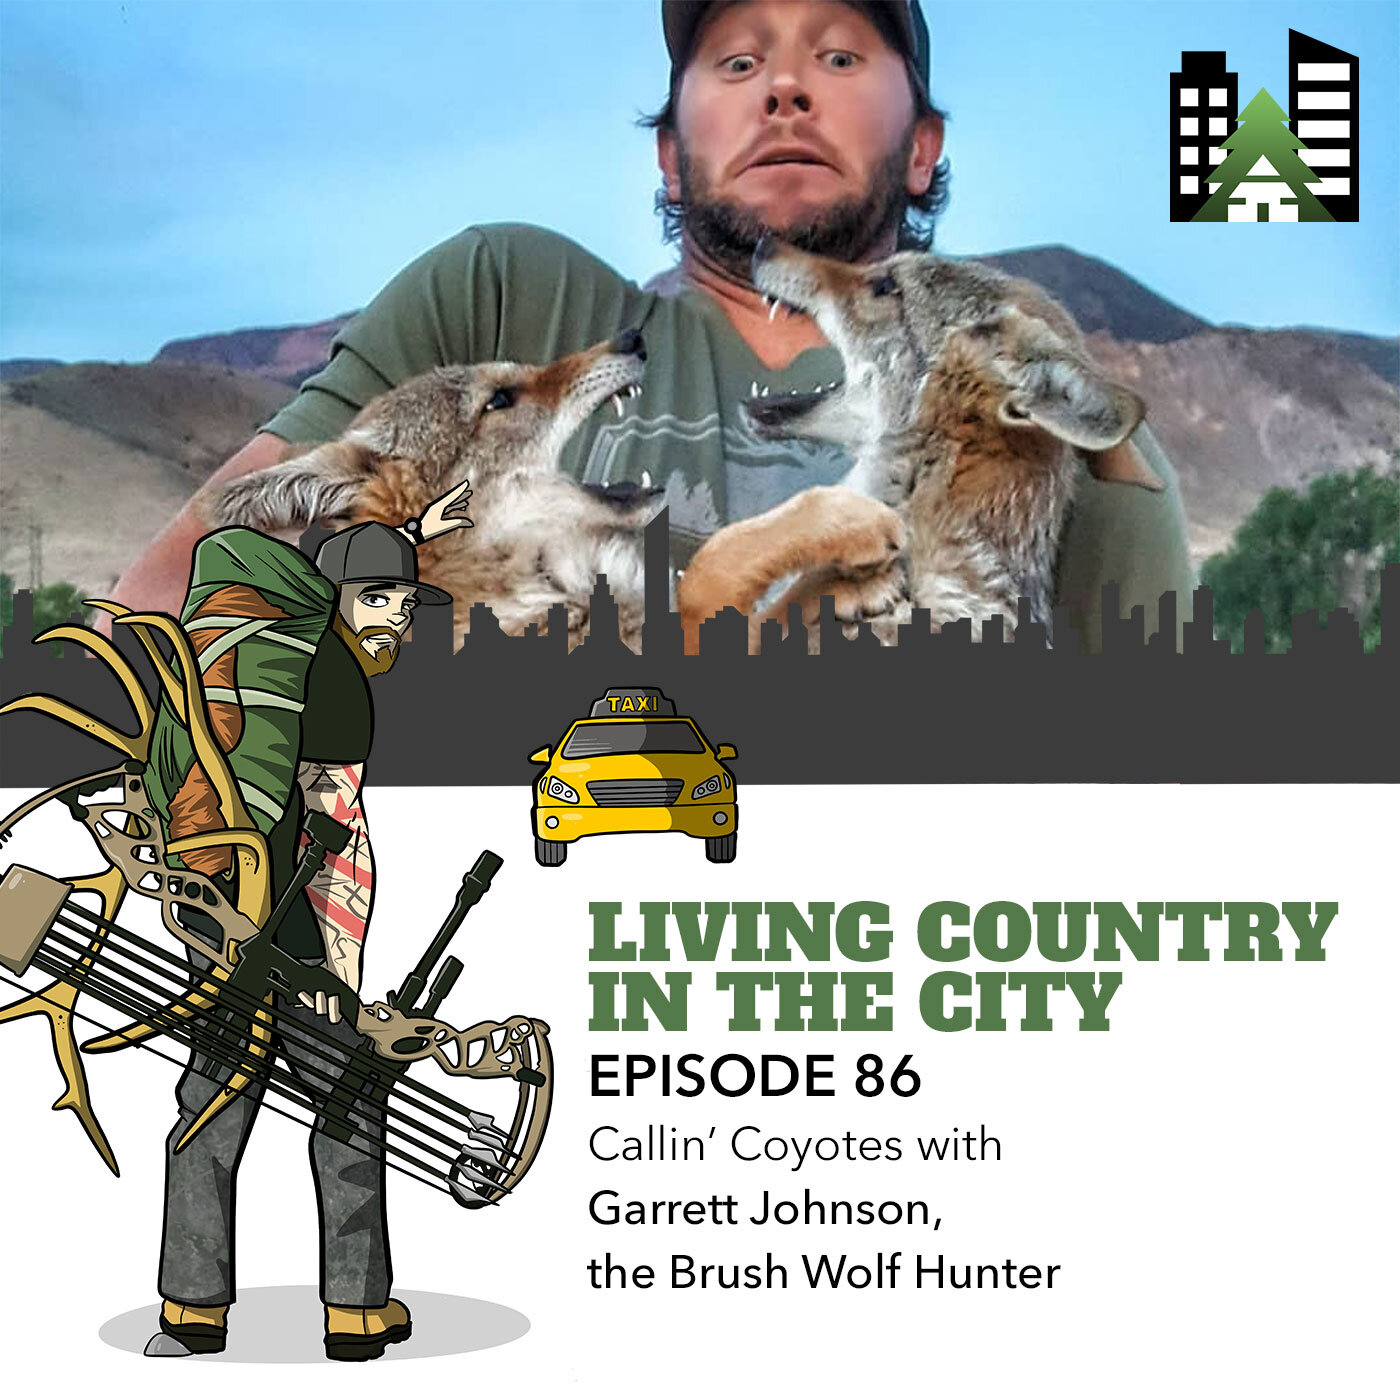 Living Country in the City - Ep 86 - Callin' Coyotes with Garrett Johnson, the Brush Wolf Hunter